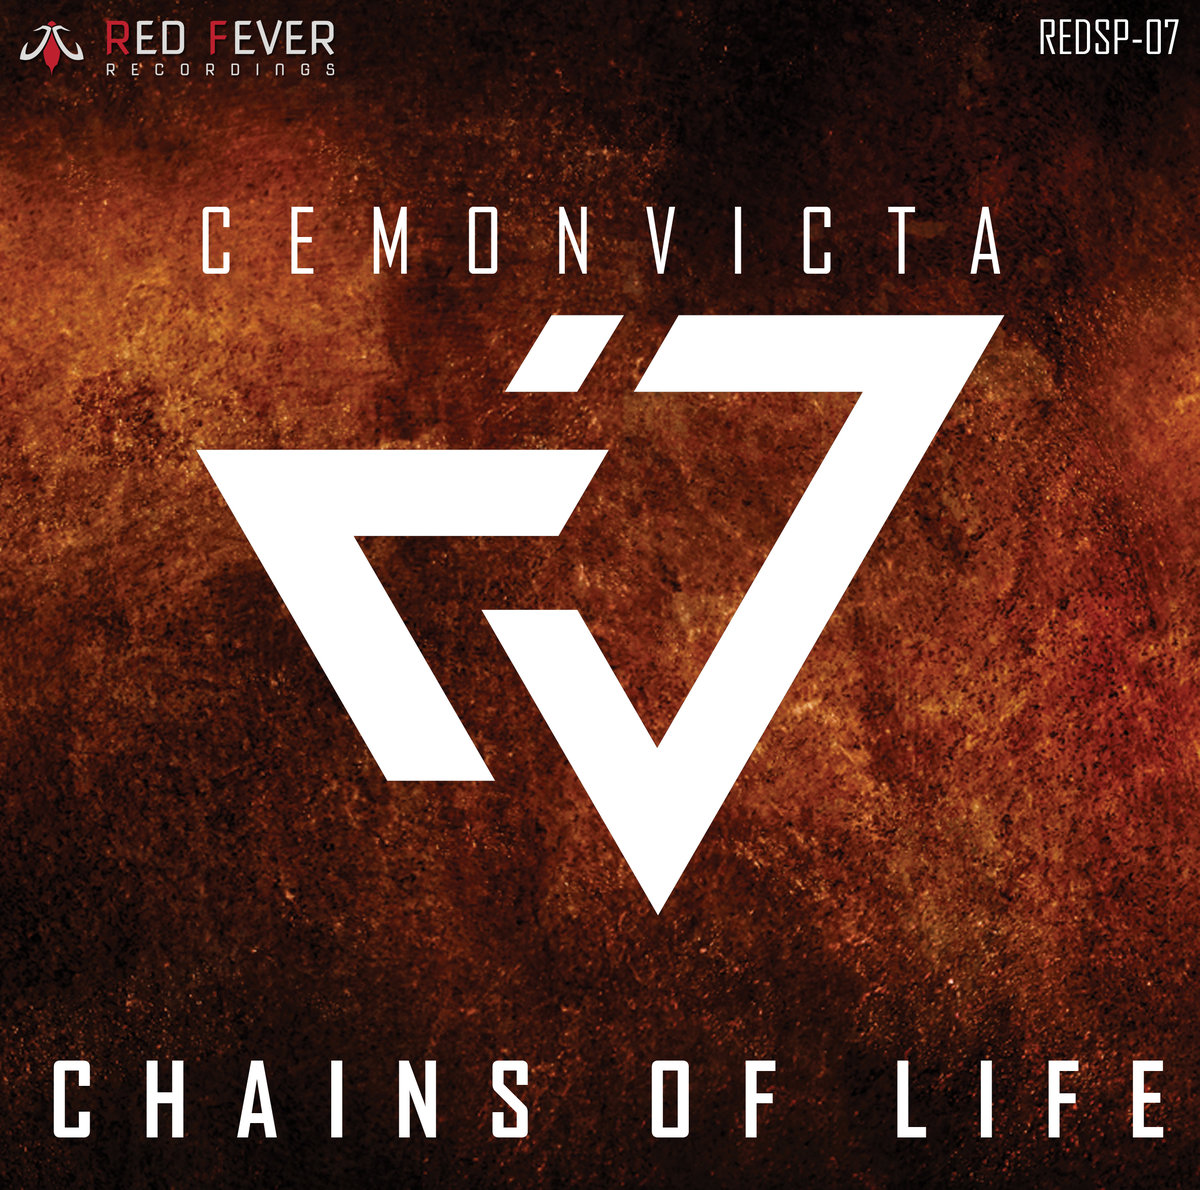 Cemon Victa - Just Hate To Speak (Andy The Core Remix) @ 'Chains Of Life' album (electronic, andy the core)